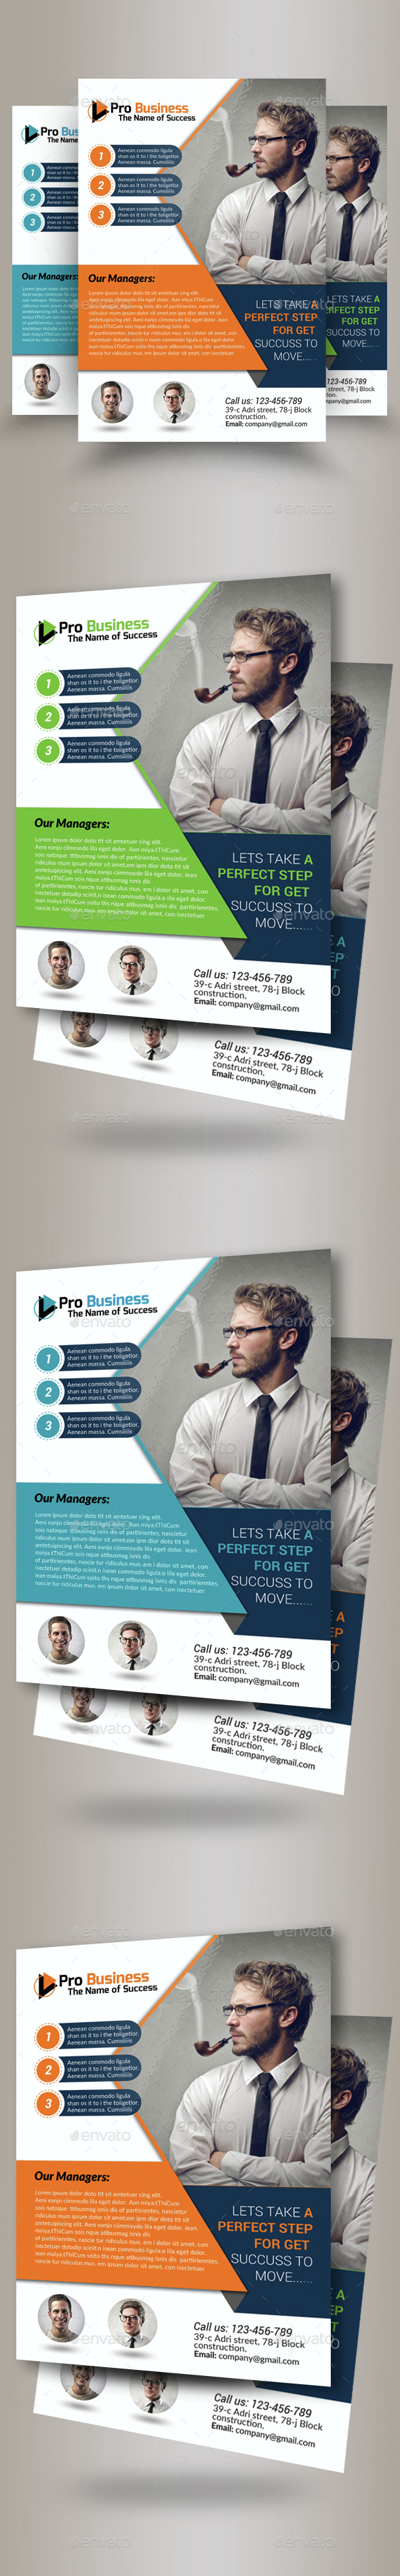 Business Training Agency Flyer Template - Corporate Flyers